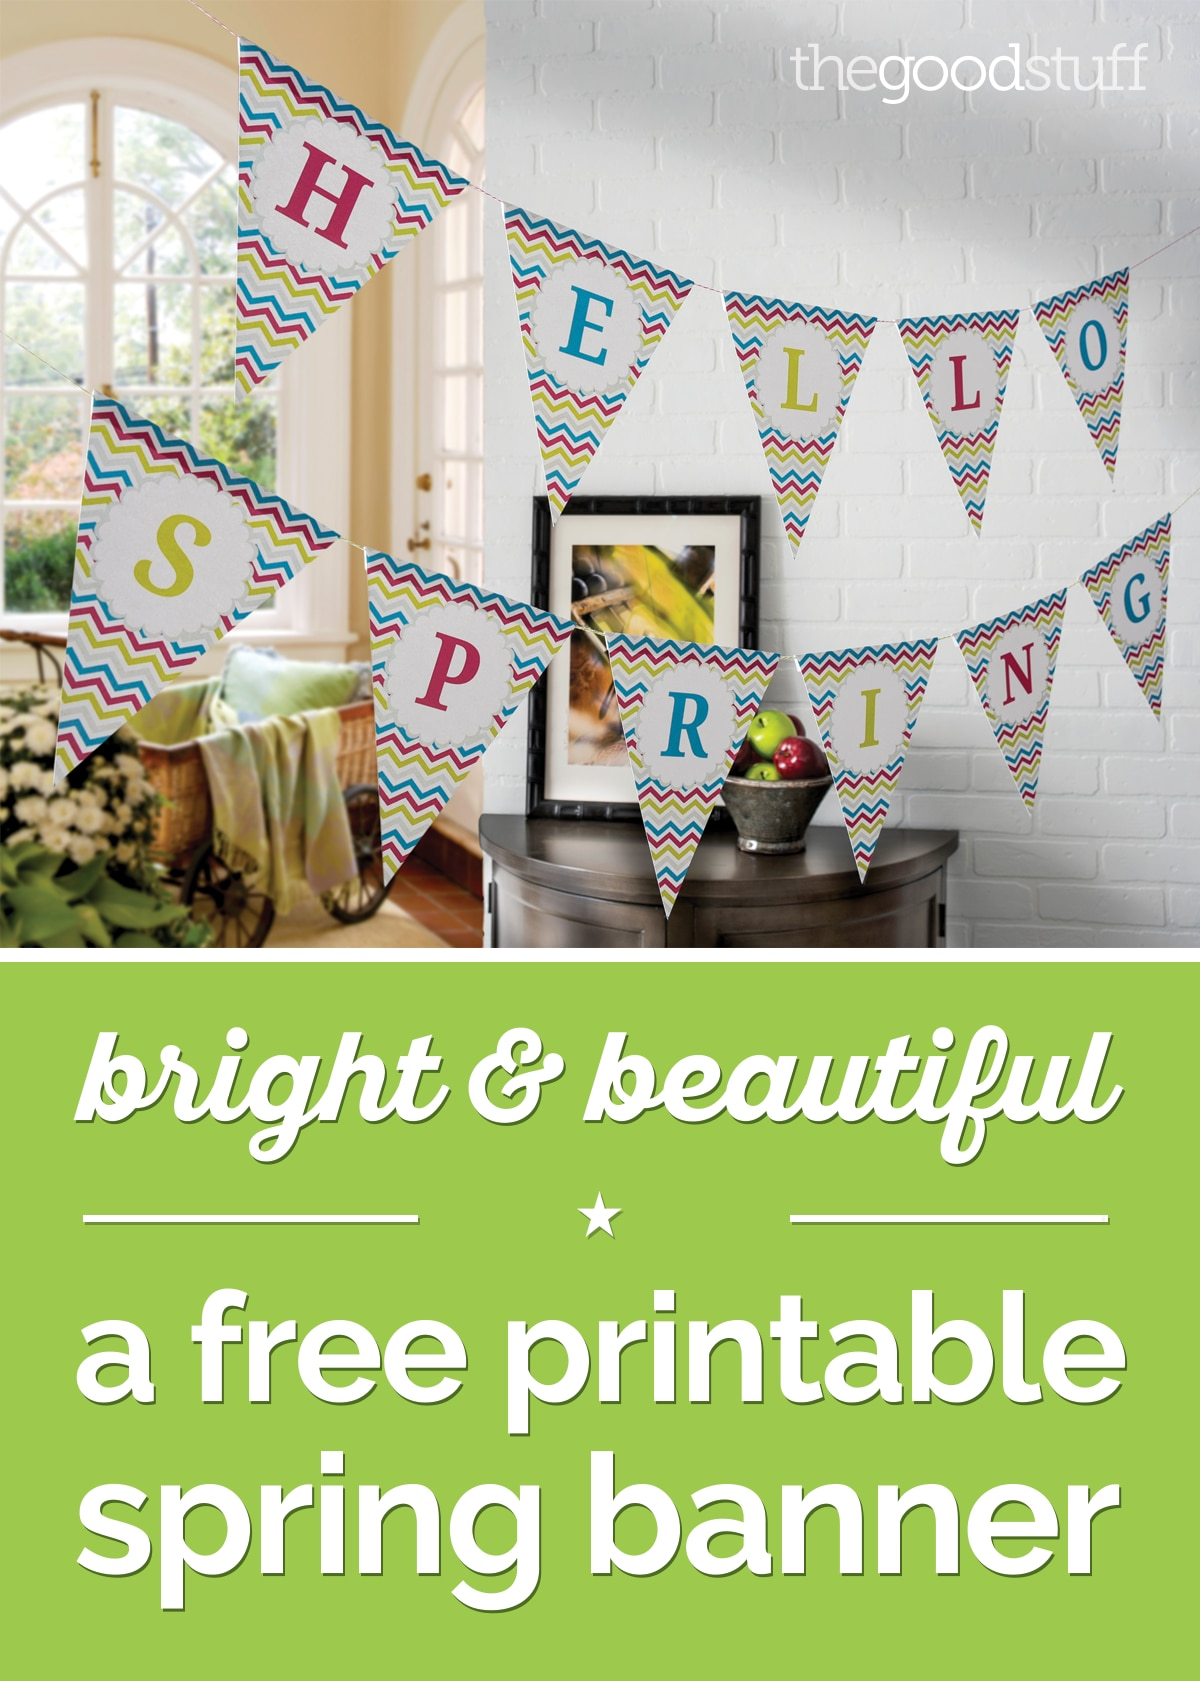 Bright & Beautiful: A Free Printable Spring Banner | thegoodstuff